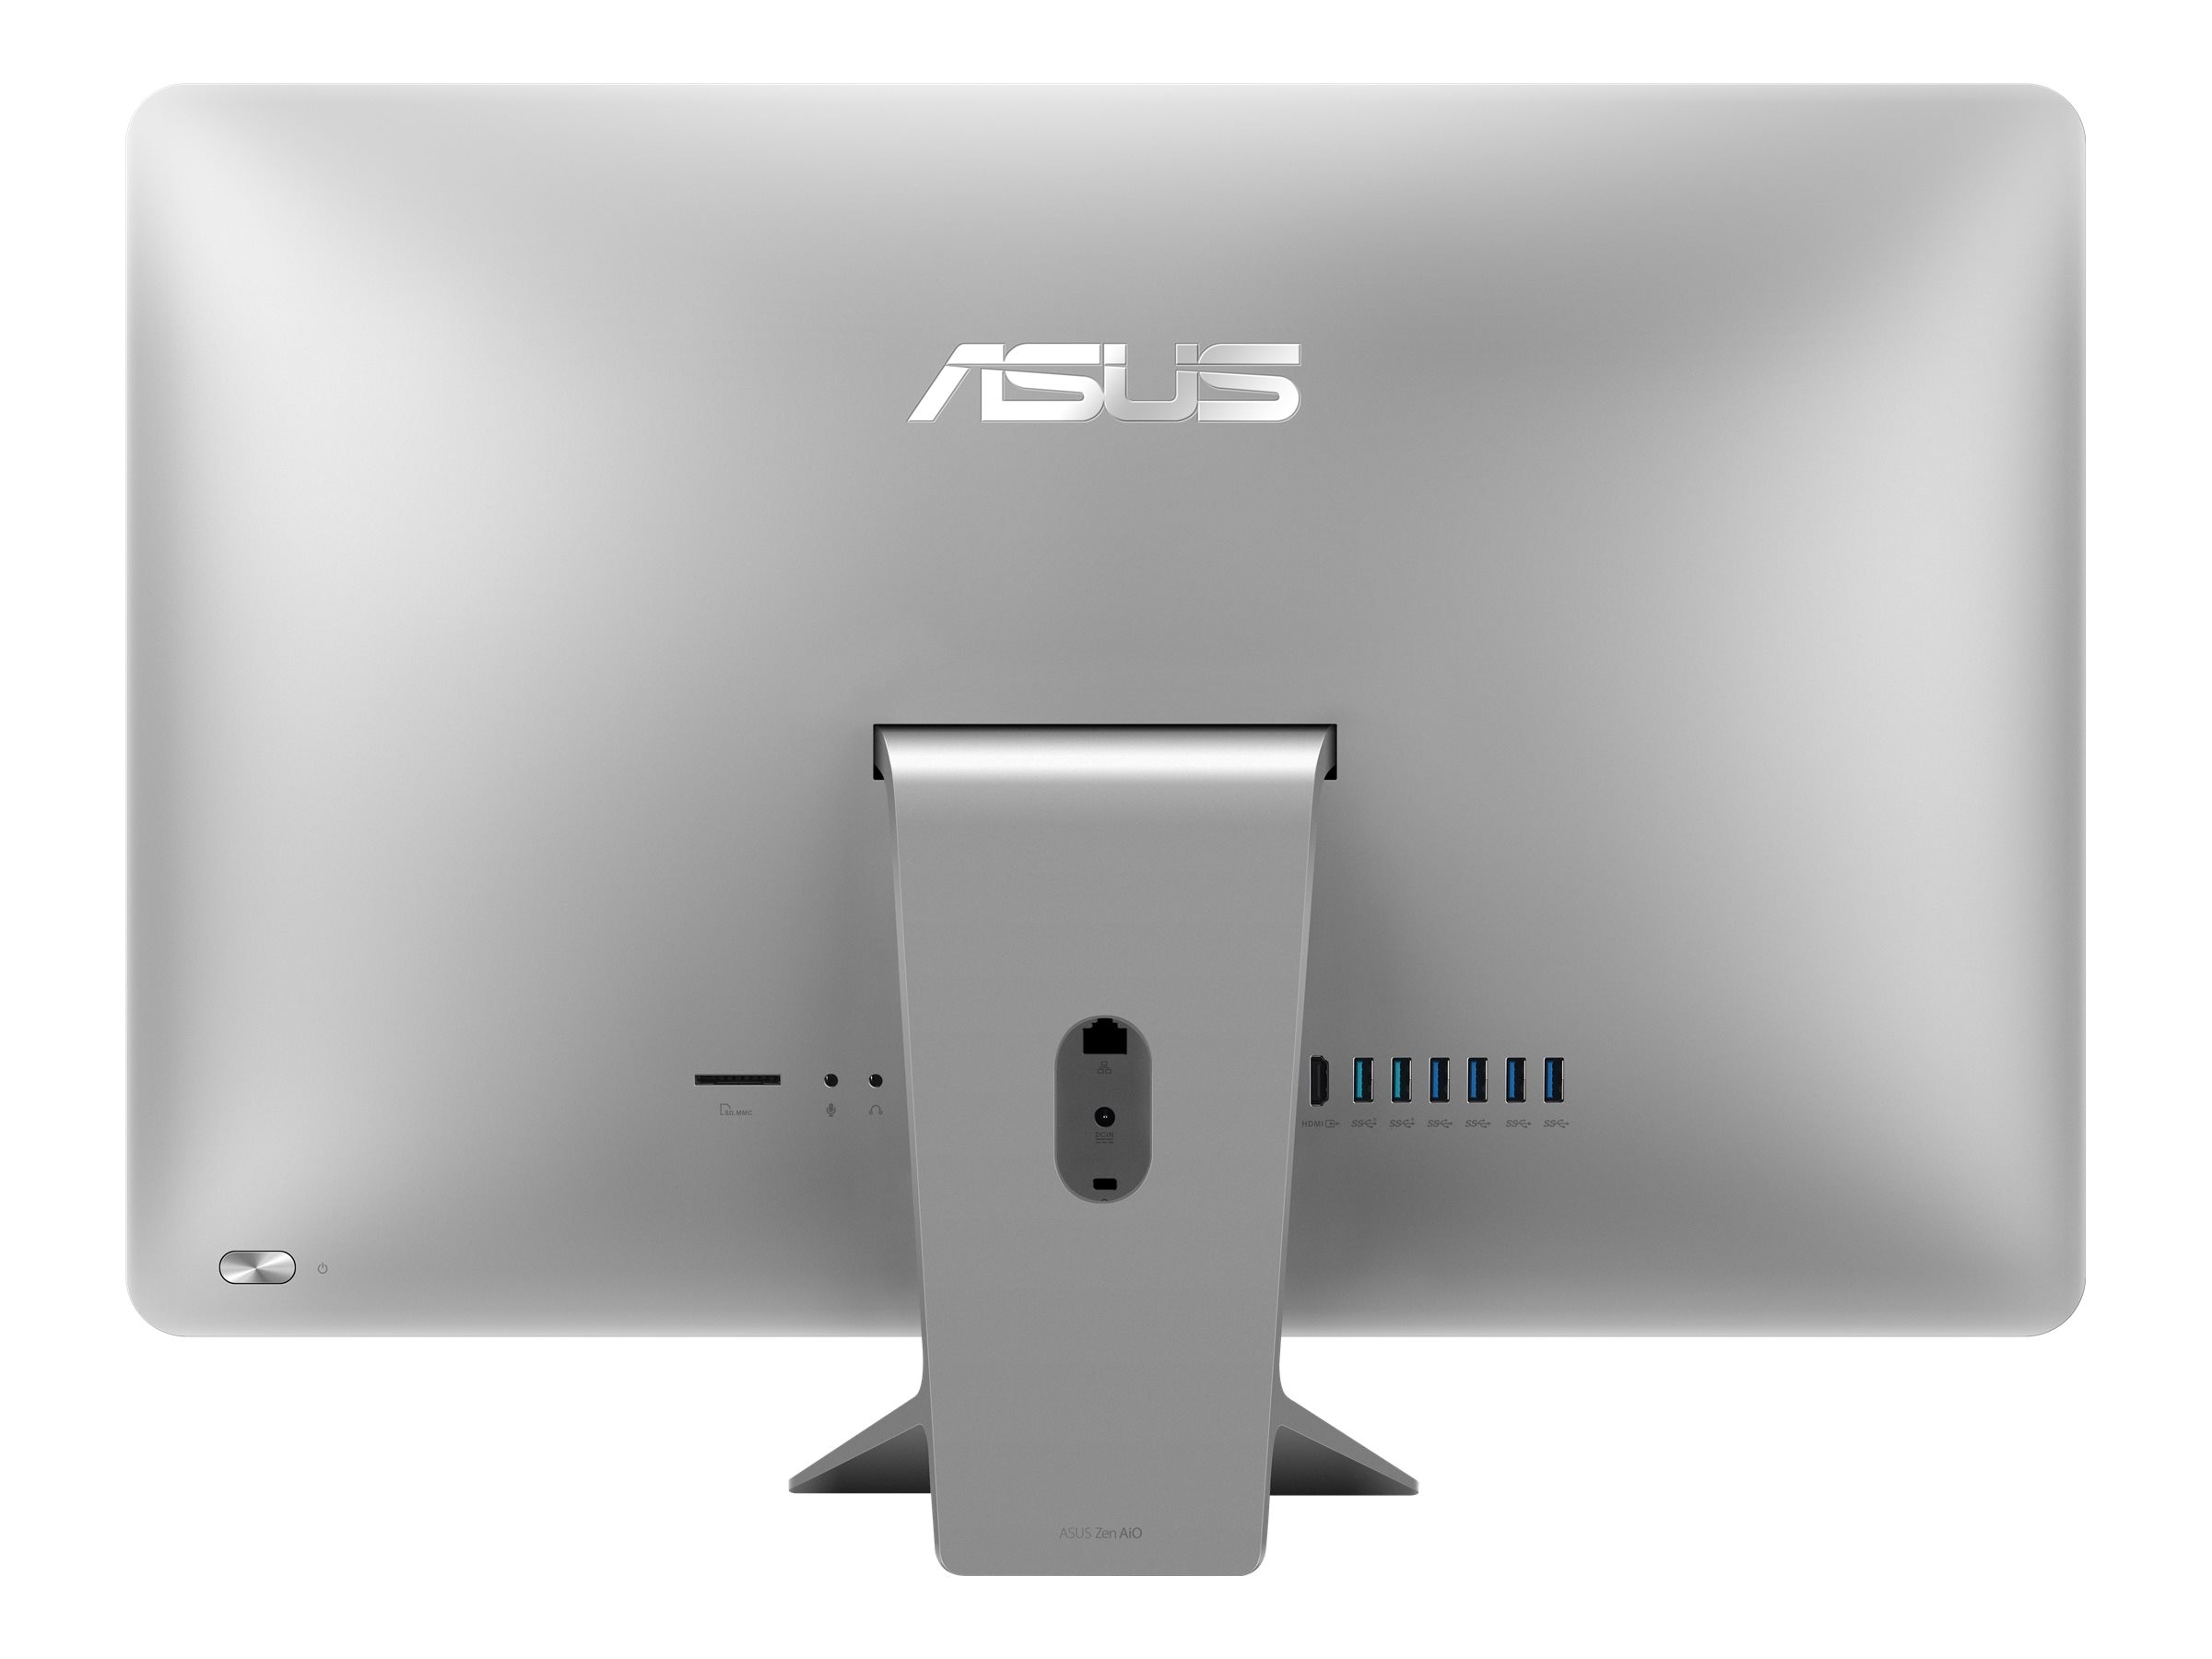 Asus ZN240ICUT-DB51T AIO Core i5-6200U 2.3GHz 8GB 2TB 23.8 W10, ZN240ICUT-DB51T